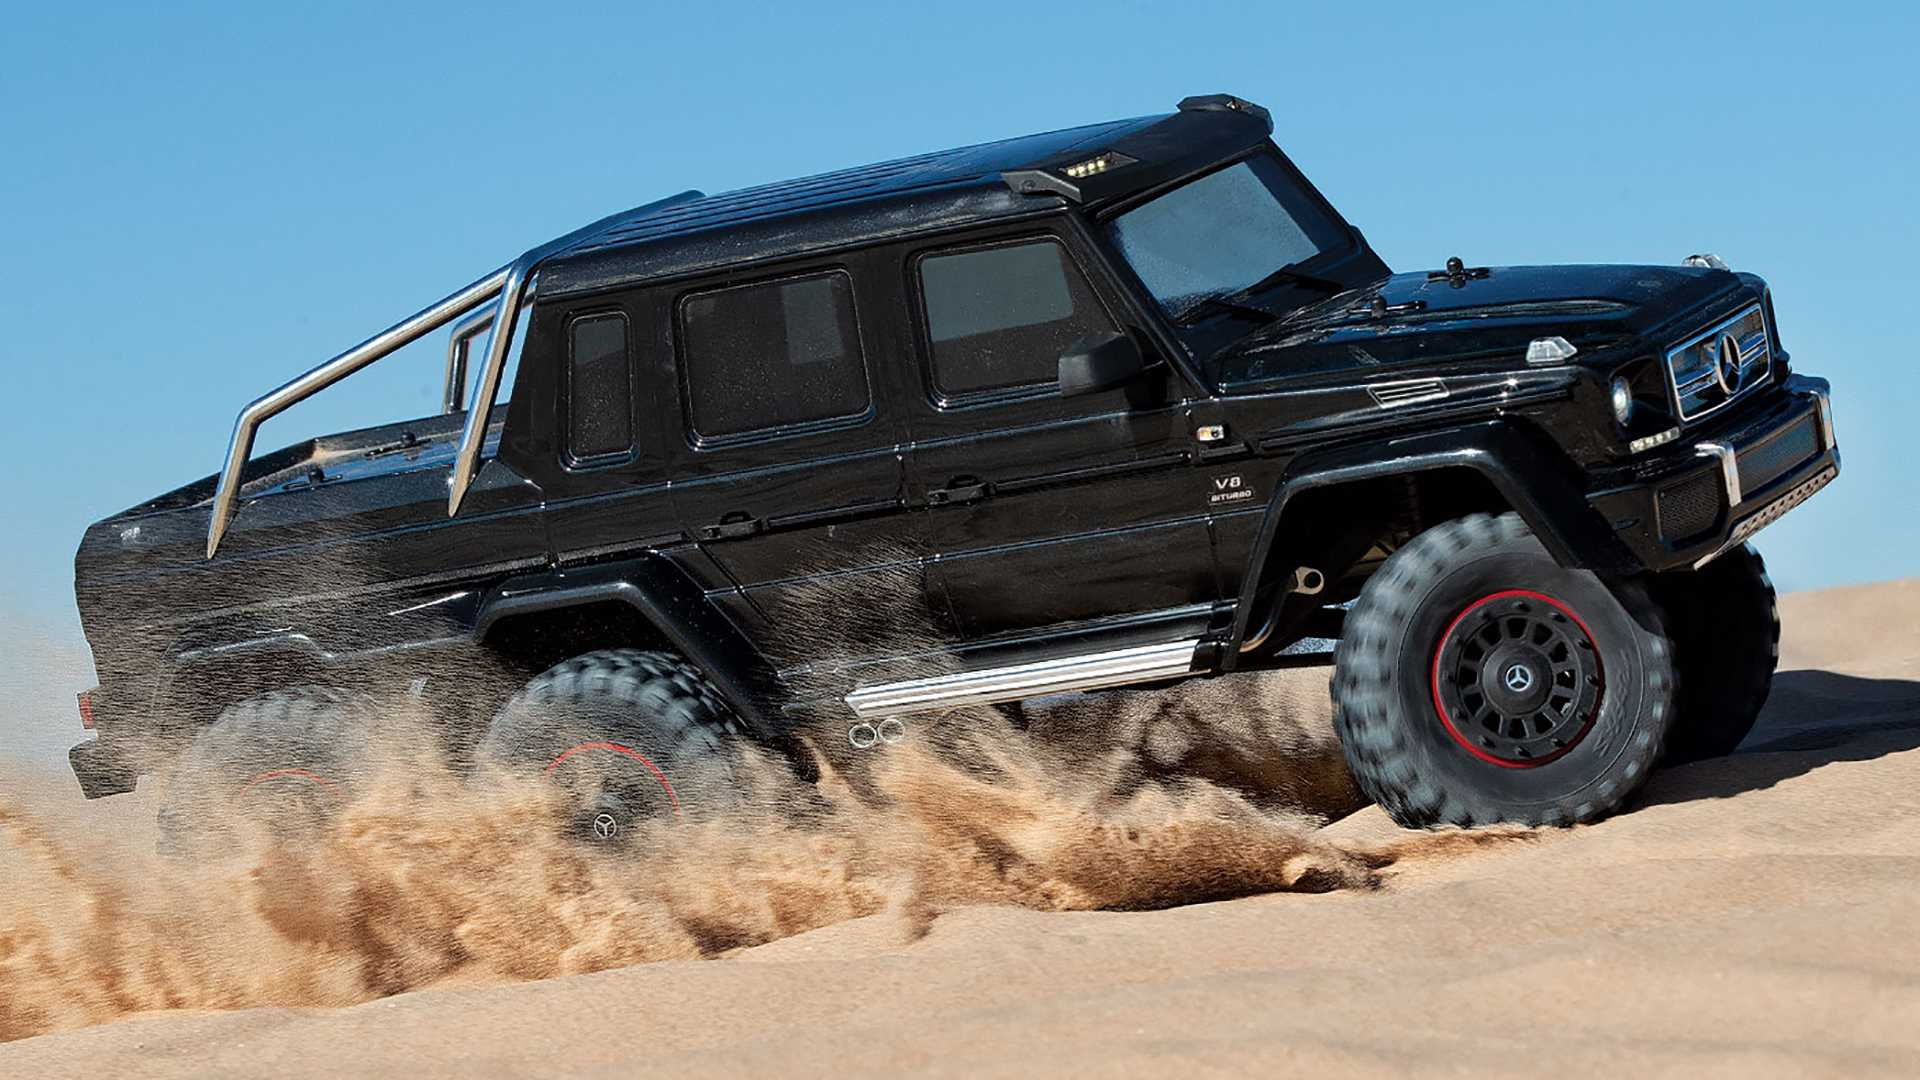 Traxxas TRX-6 Mercedes-AMG G63 6x6 is ready to tackle the Rubicon